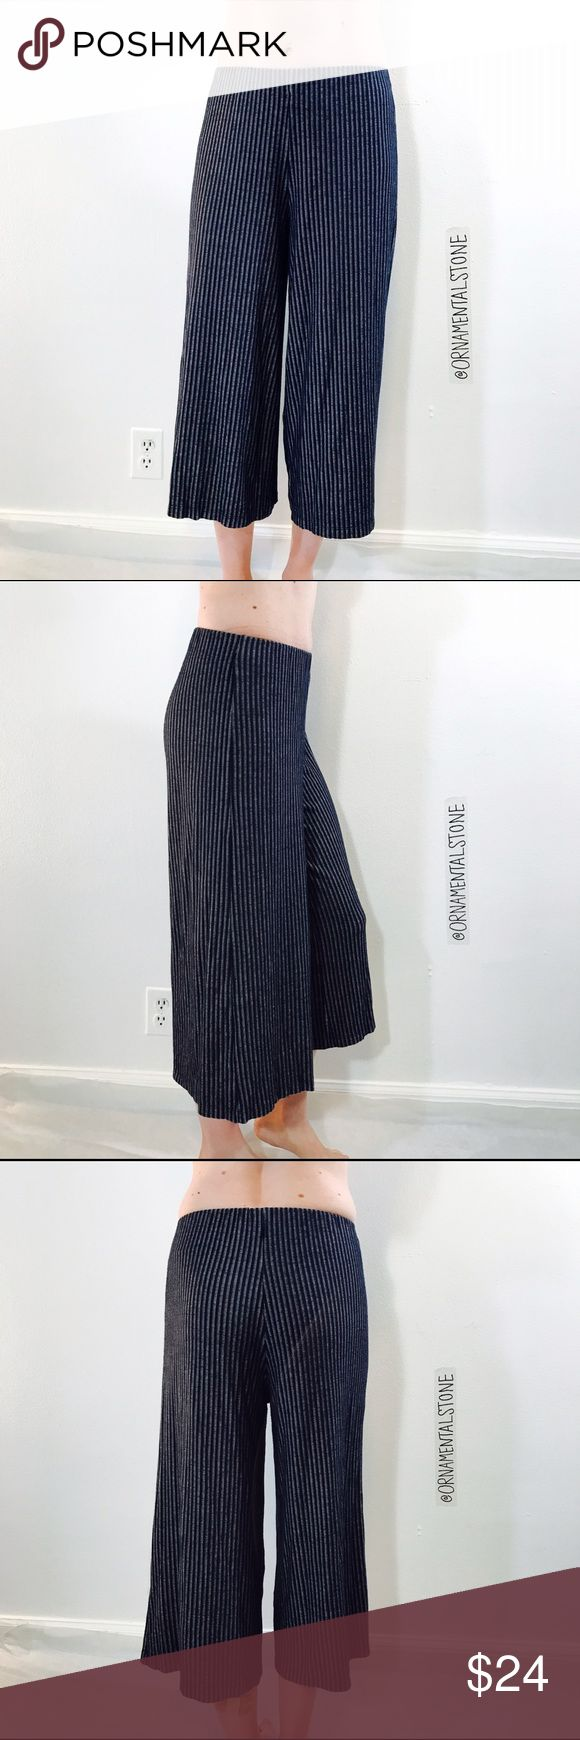 ZARA STRIPED KNIT GAUCHO PANTS GUC, minimal-moderate signs of wear. No tears or stains, light piling. Zara Pants